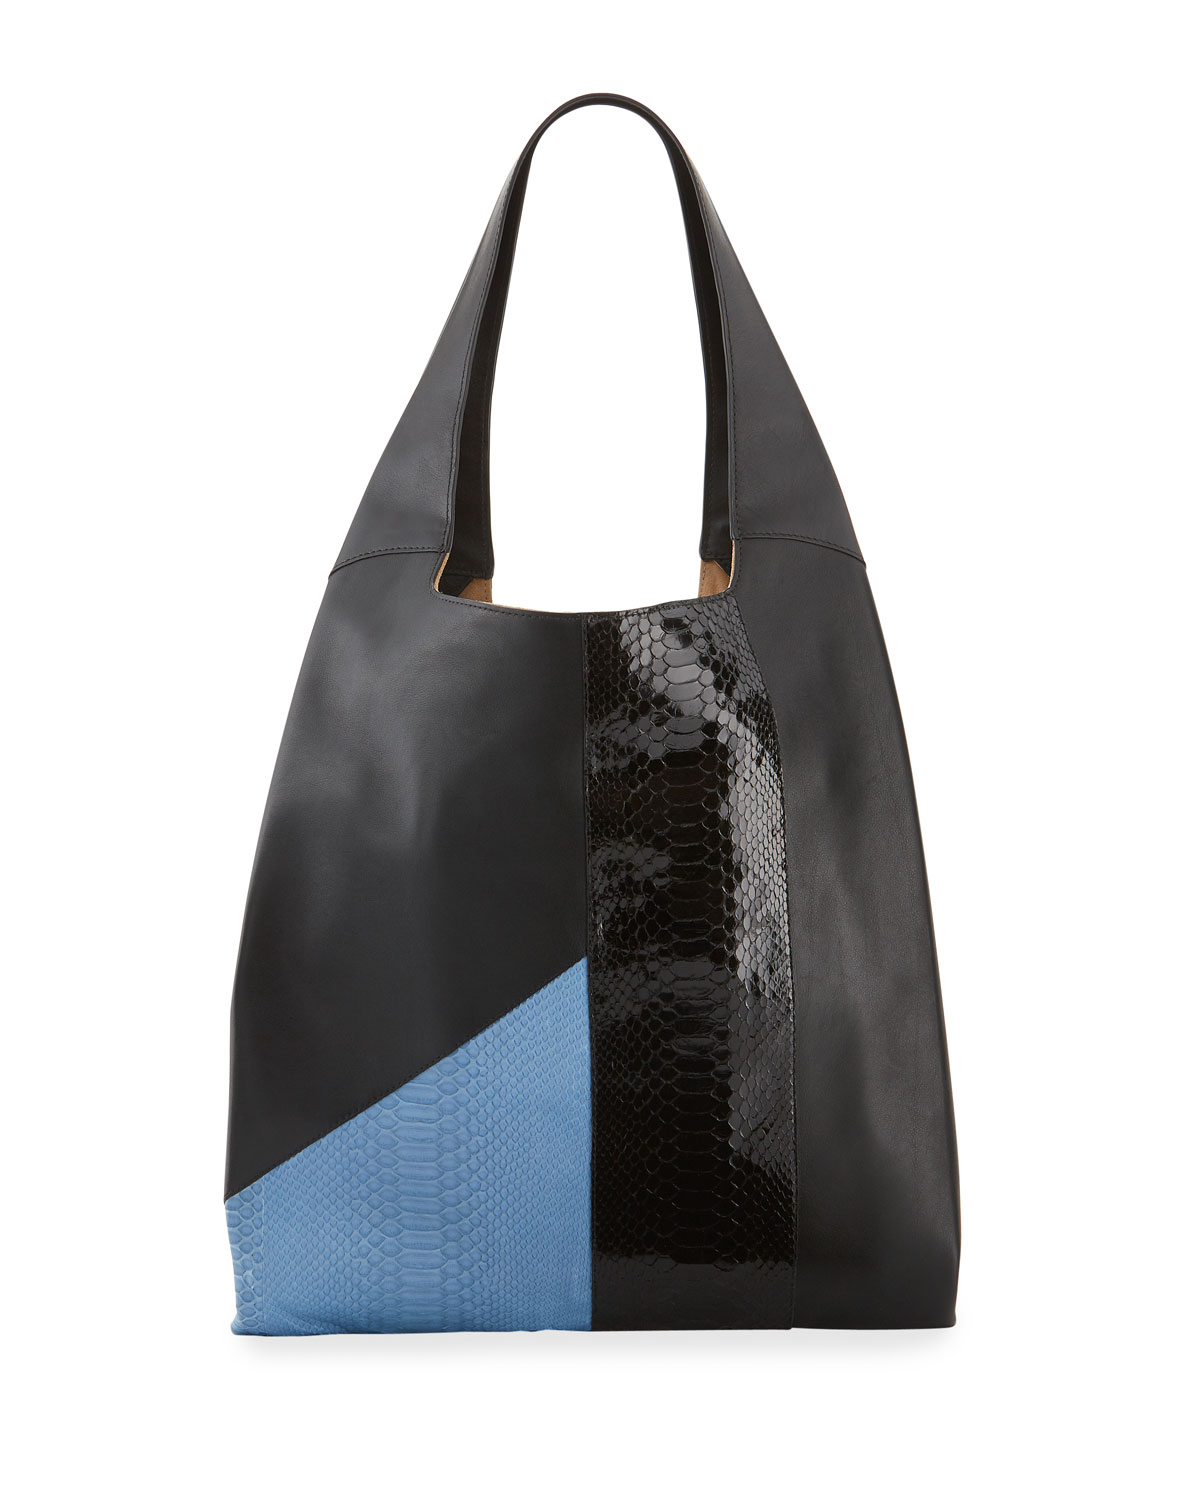 Grand Shopper Smooth Tote Bag, Blue/Black